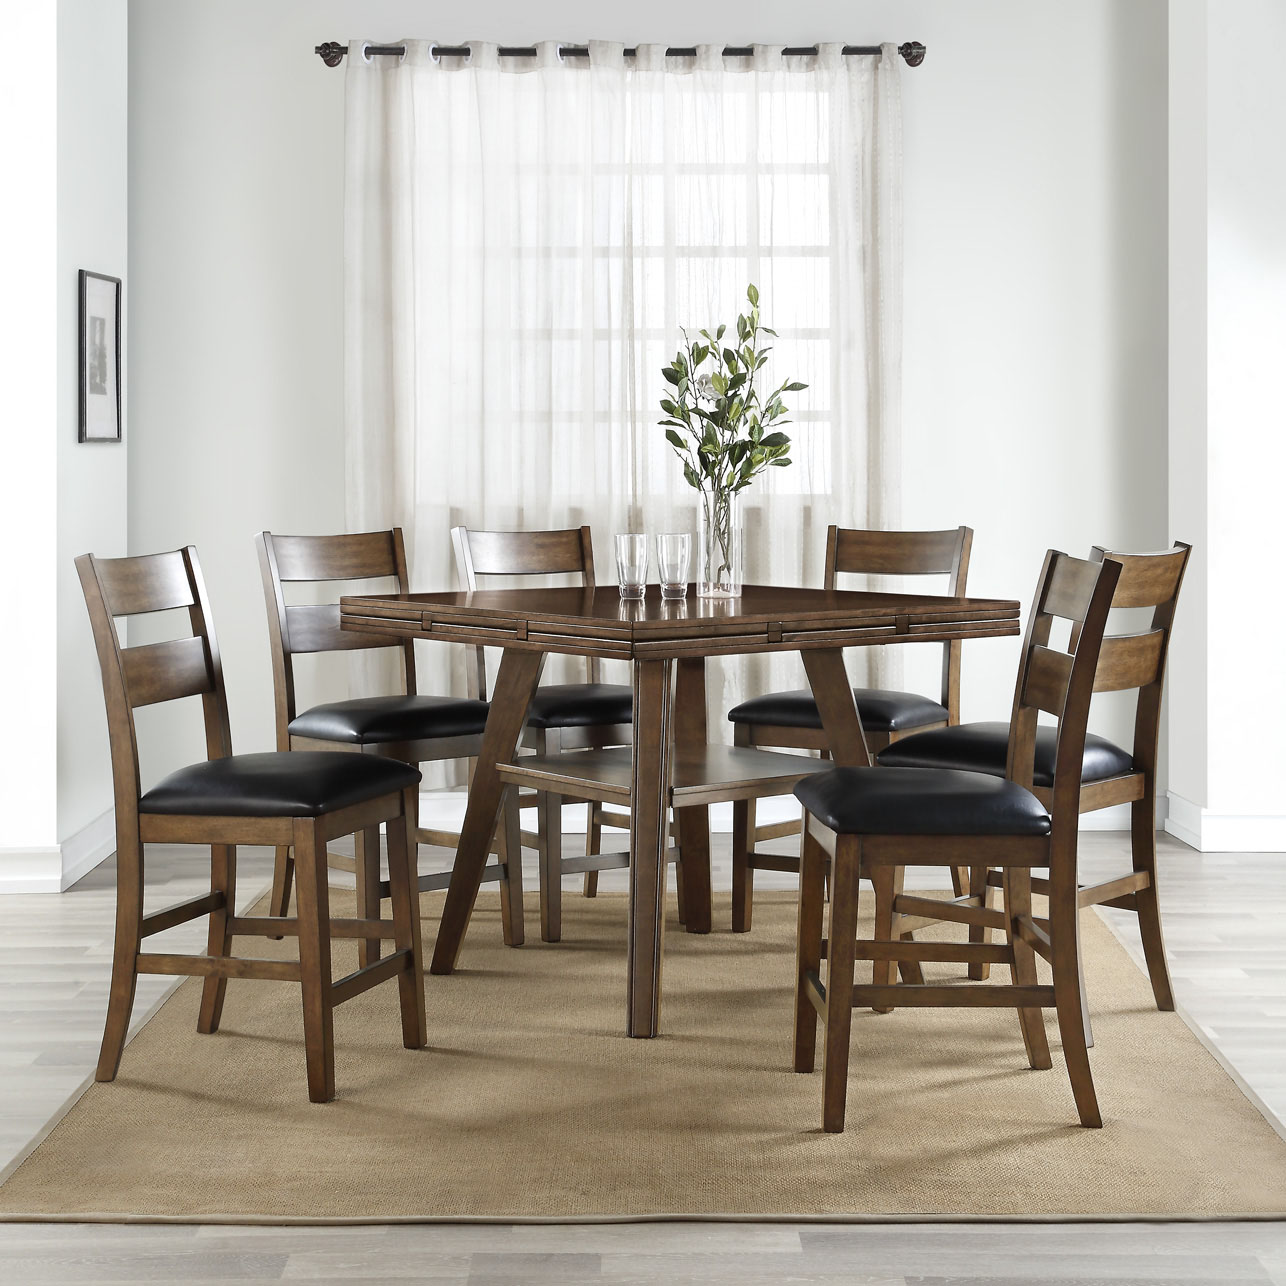 Best Place To Buy Dining Room Set: Bayside Furnishings